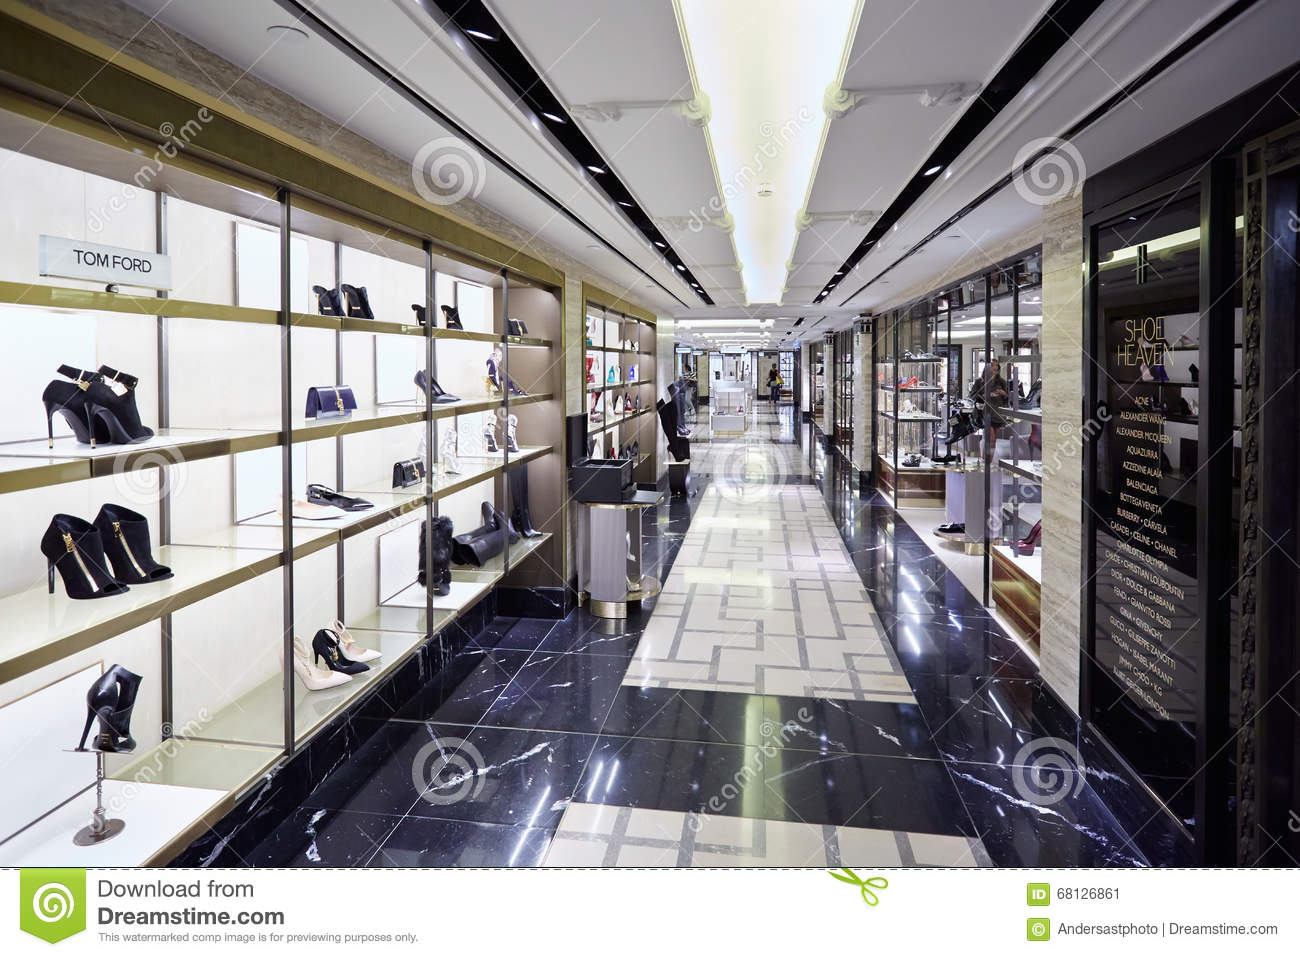 Harrods department store interior shoe heaven in london for Dep decoration interieur